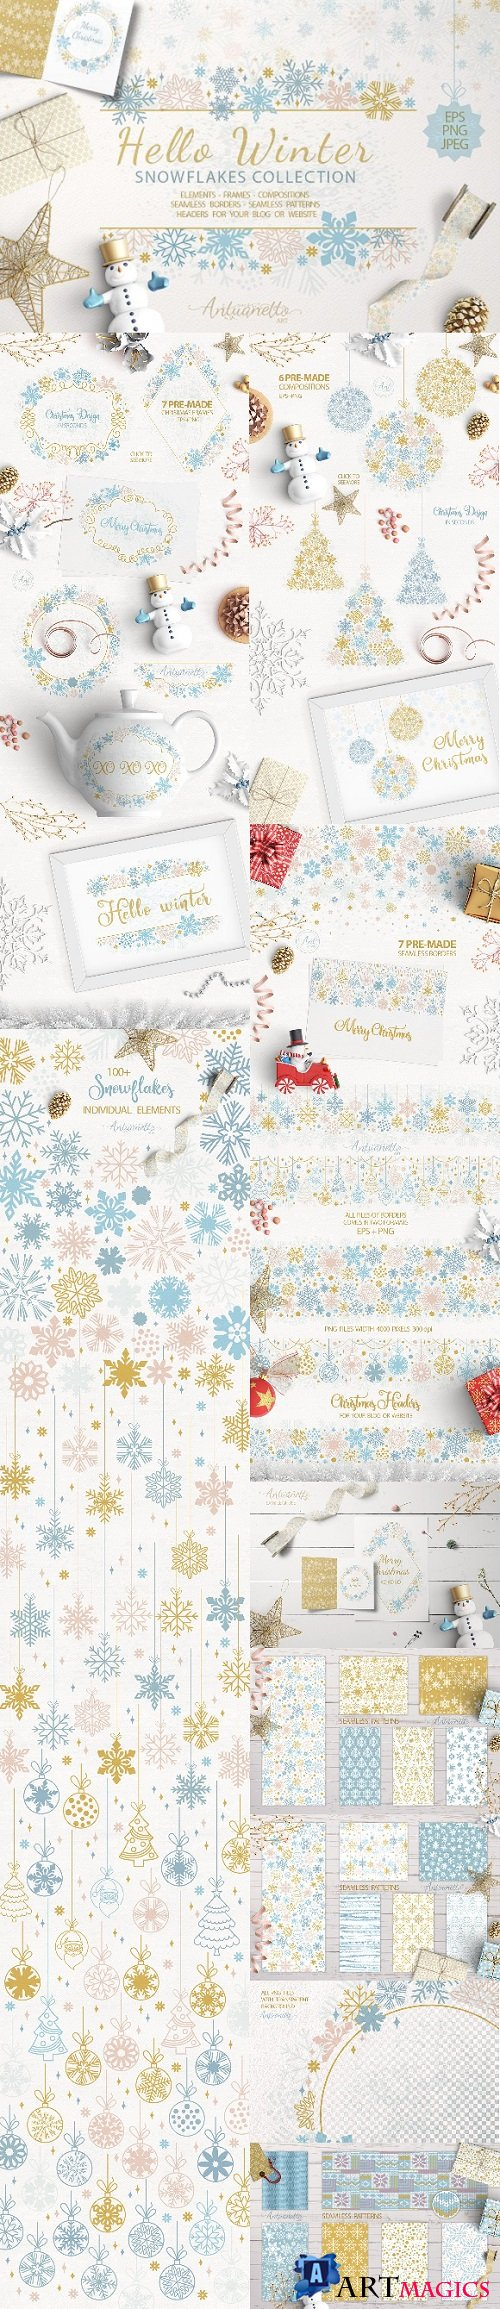 Sparkling snowflakes collection - 2104105